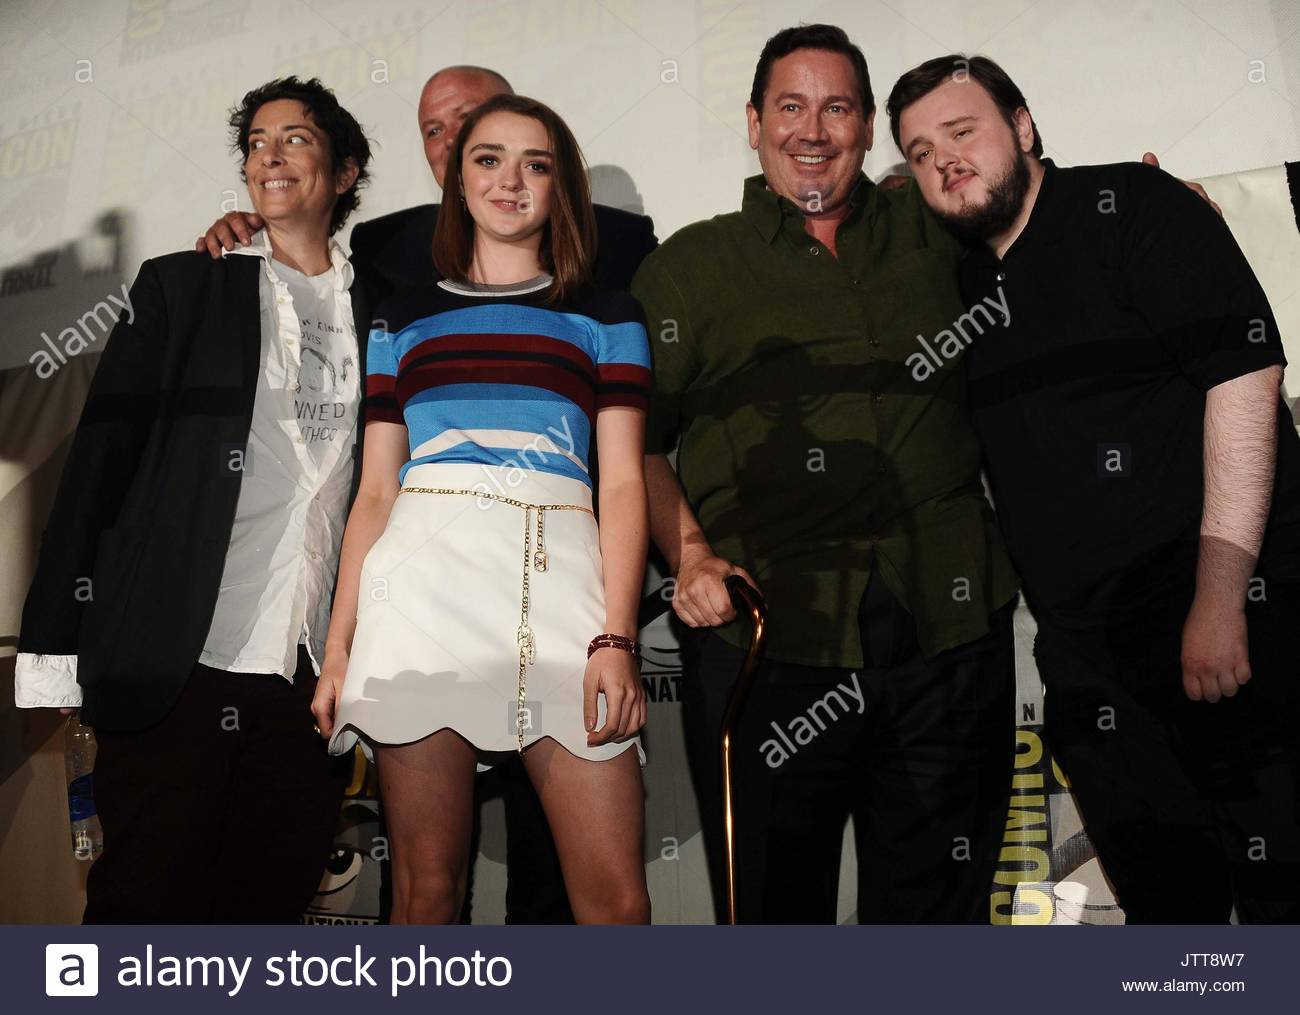 Carolyn Strauss, Conleth Hill, Maisie Williams, David Nutter and John  Bradley. Natalie Dormer and her fellow Game of Thrones cast members signs  autographs ... 226441ffd5